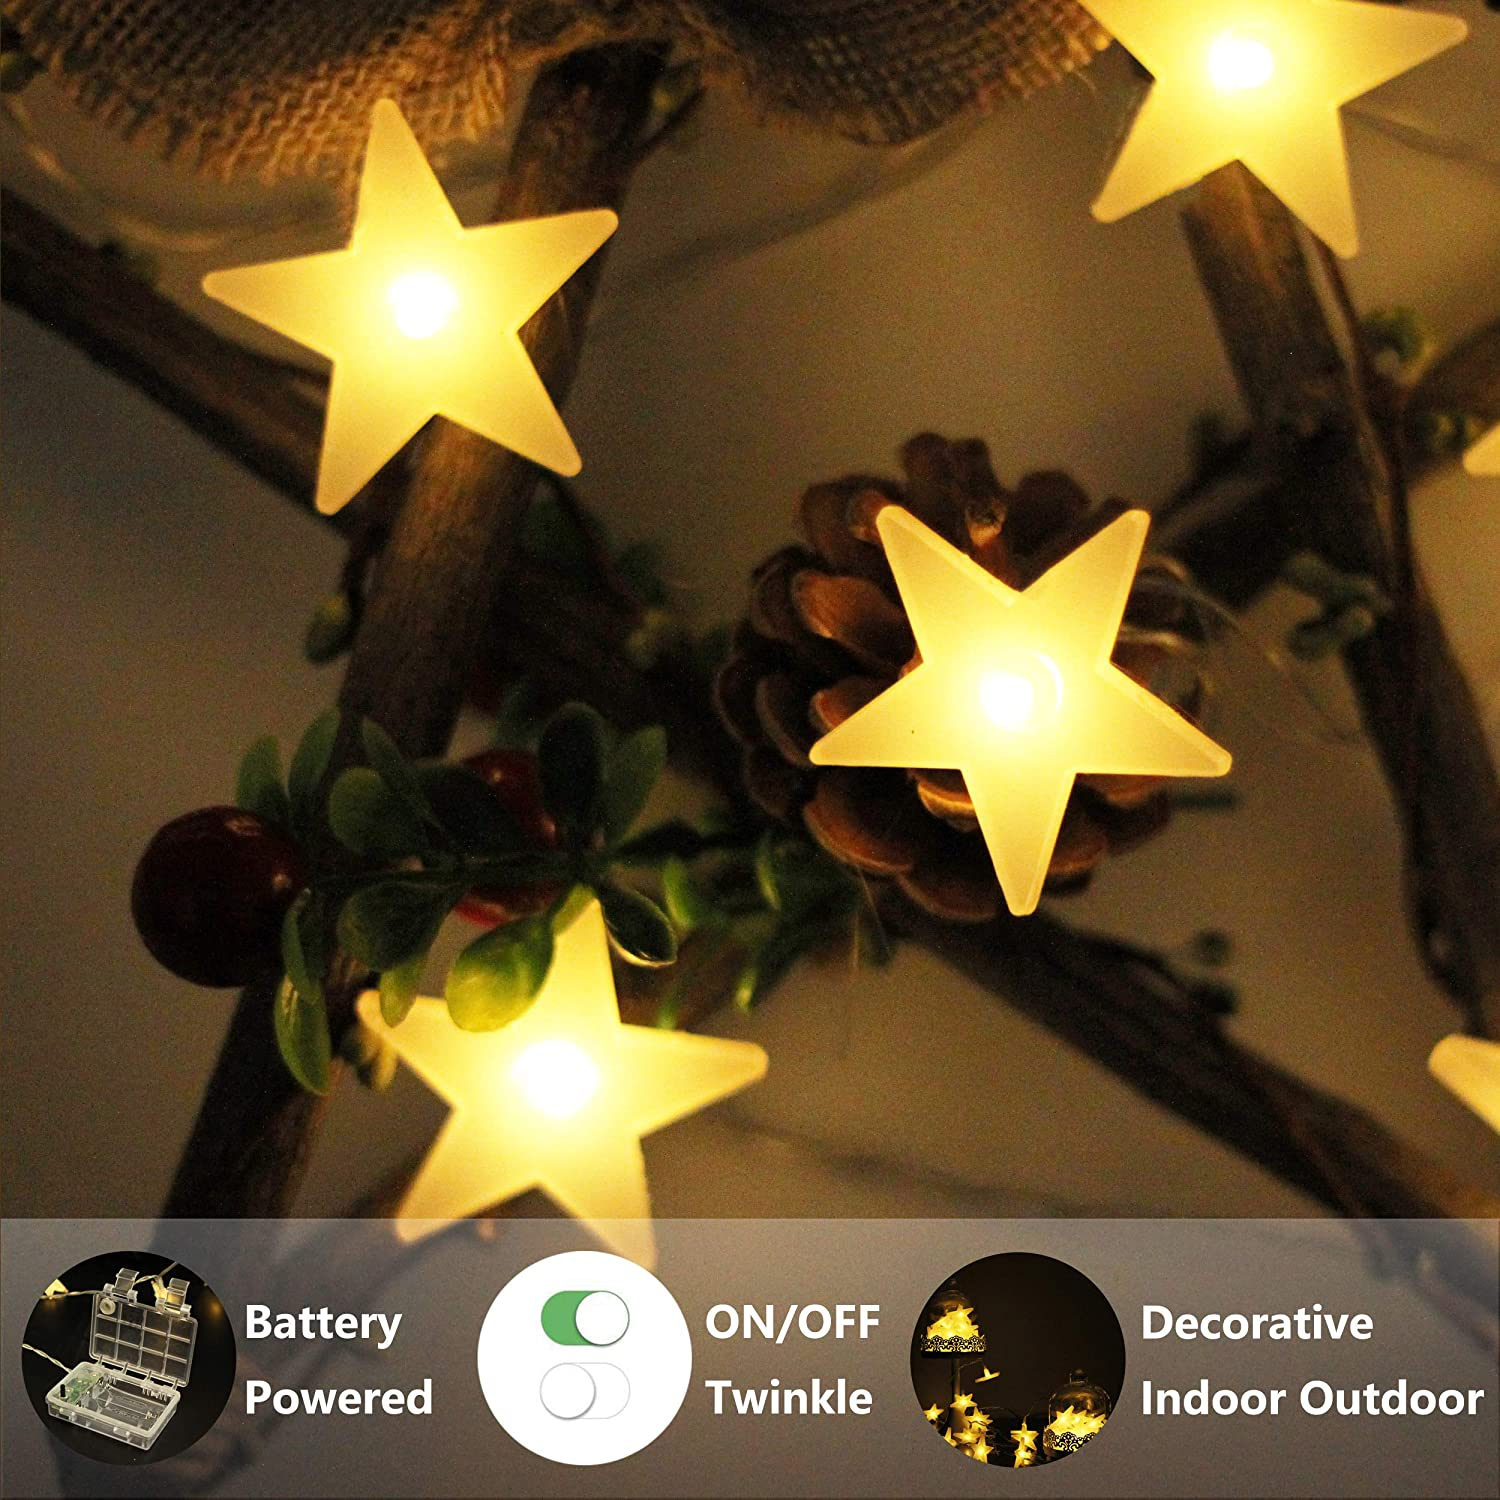 Louischoice Star String Lights Battery Powered Twinkling Led Christmas 40 Warm White Decorative Stars For Kids Room Wedding Birthday Holidays